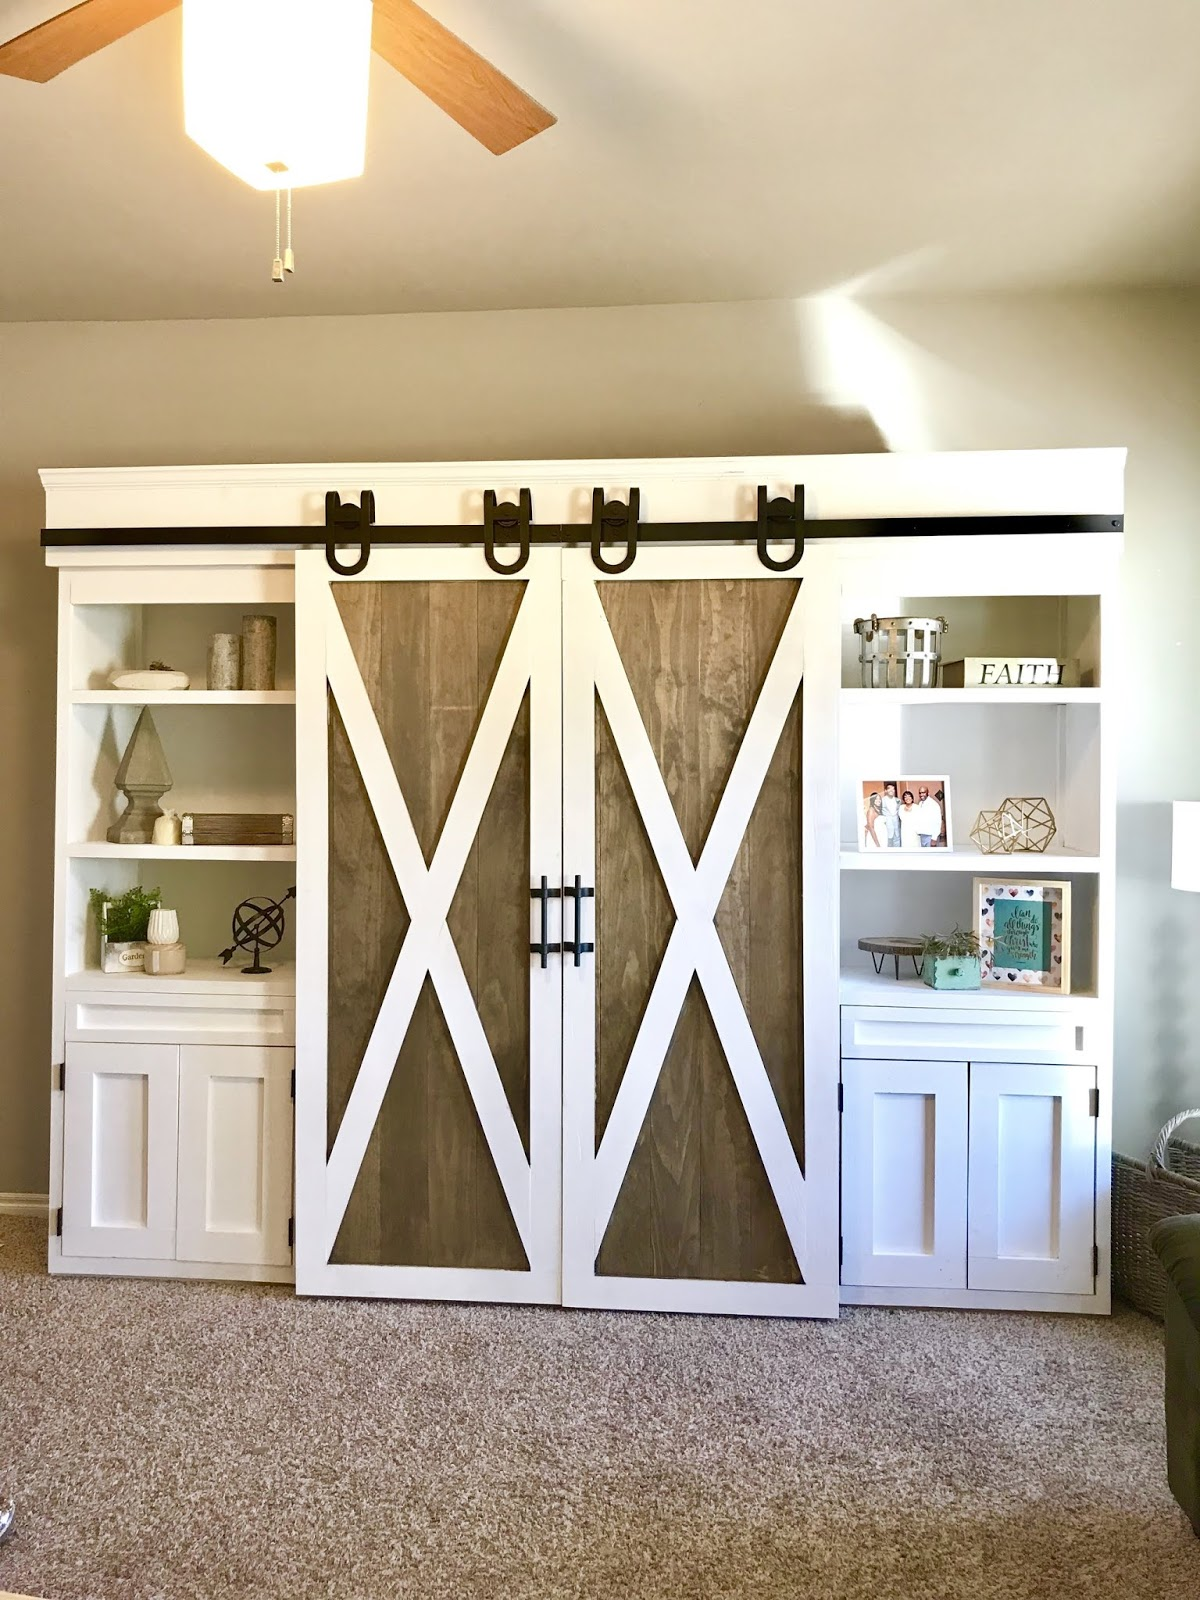 Barn door entertainment unit hide TV